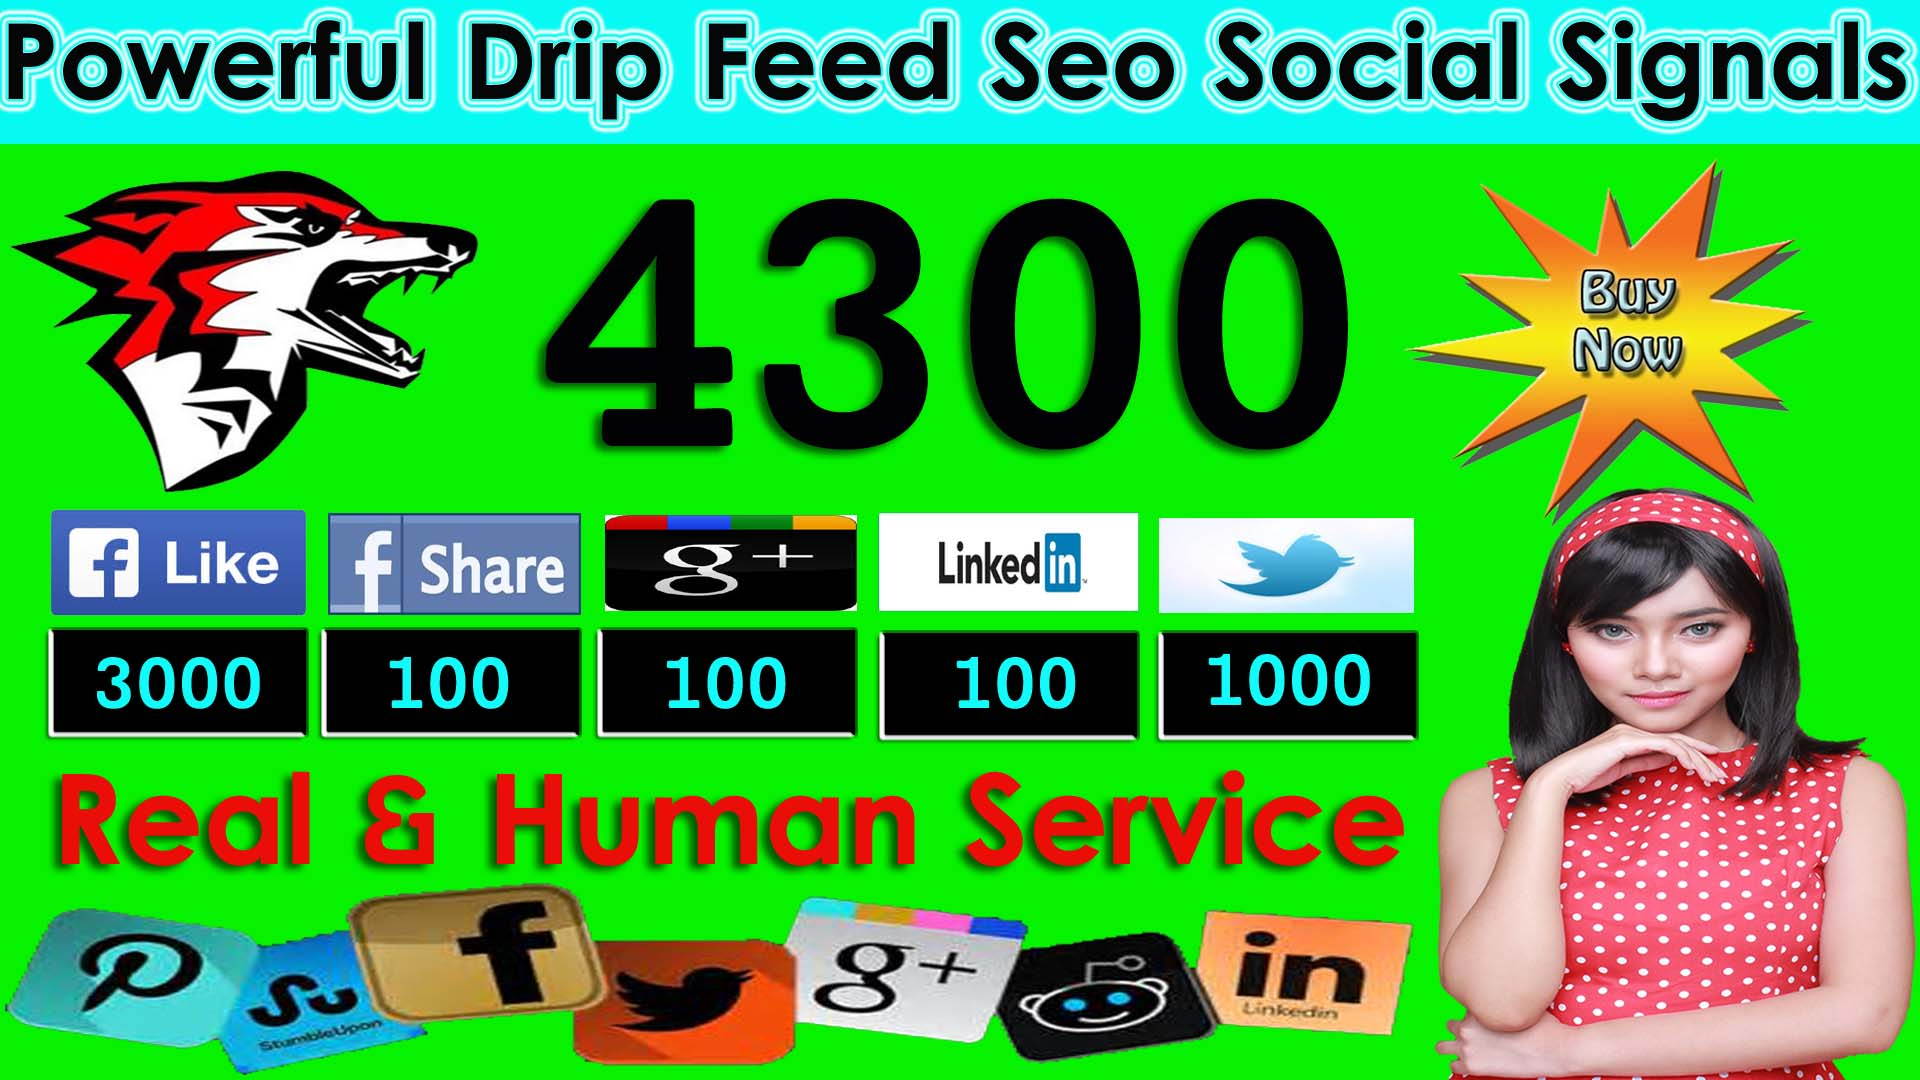 Drif Feed 4300 Seo Social Signal Promotion To Your Channel